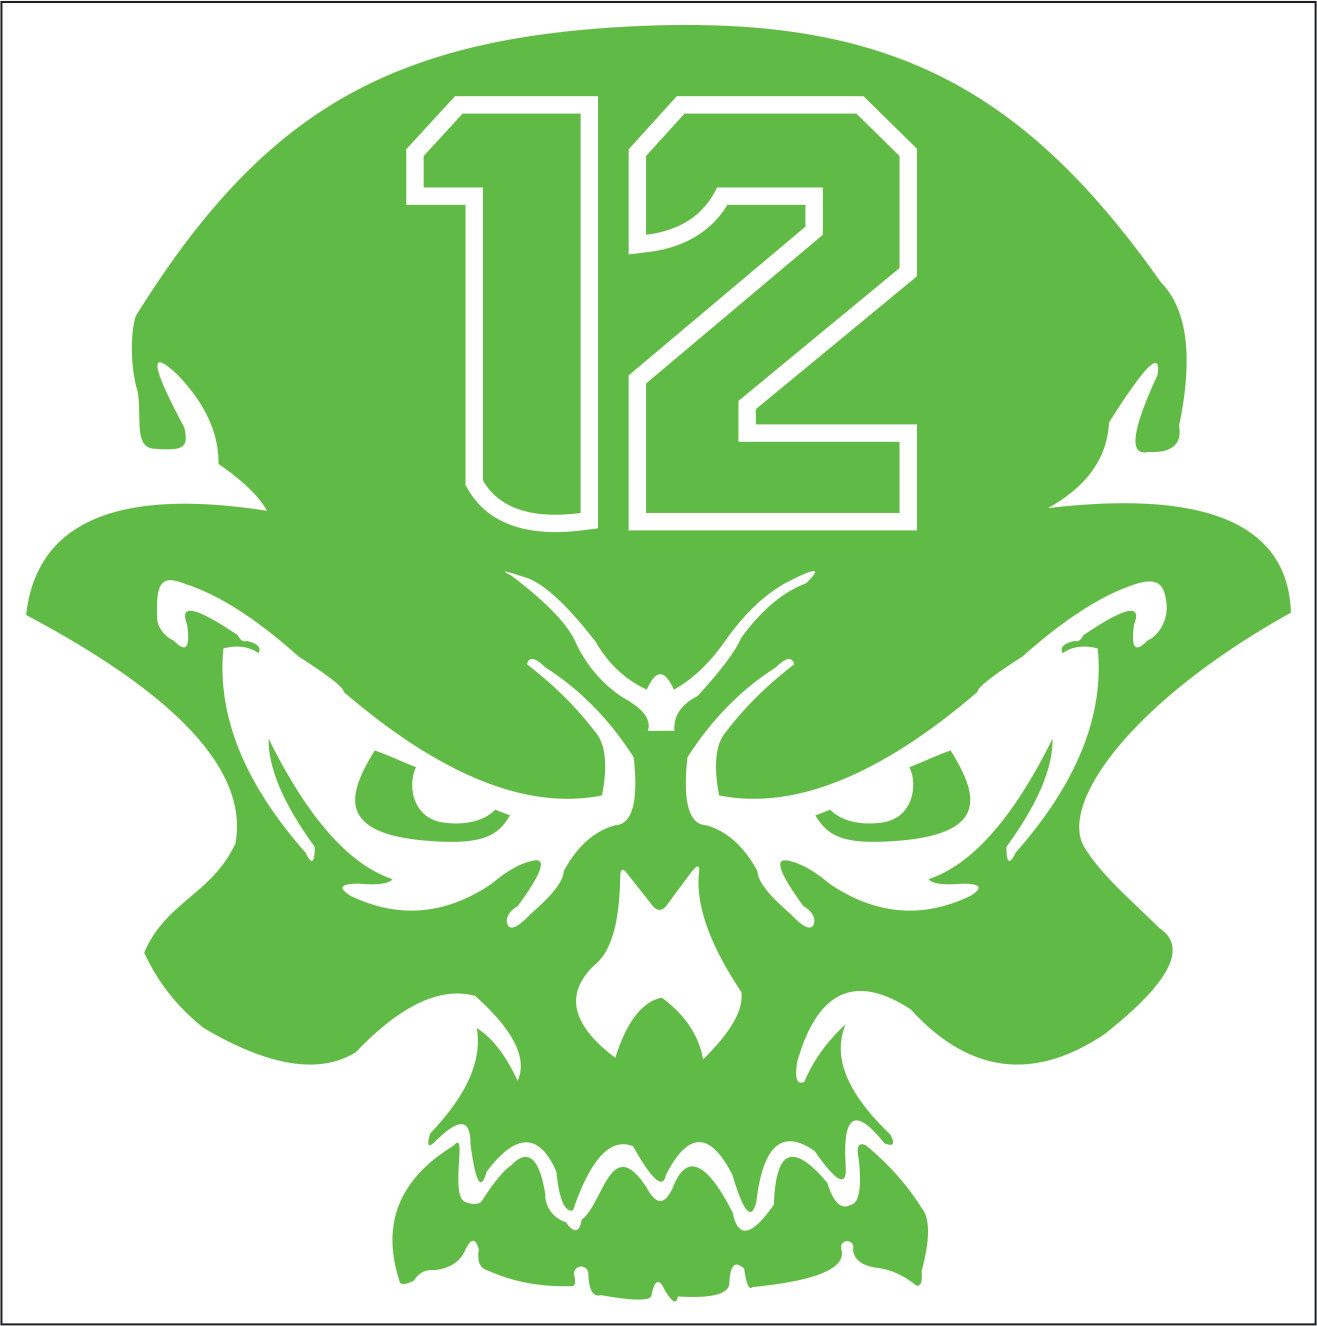 TWO Pack Of Th Man Seattle Seahawks Skull Custom Vinyl - Vinyl decals custompack of custom skull face vinyl decalsstickers thedecalking